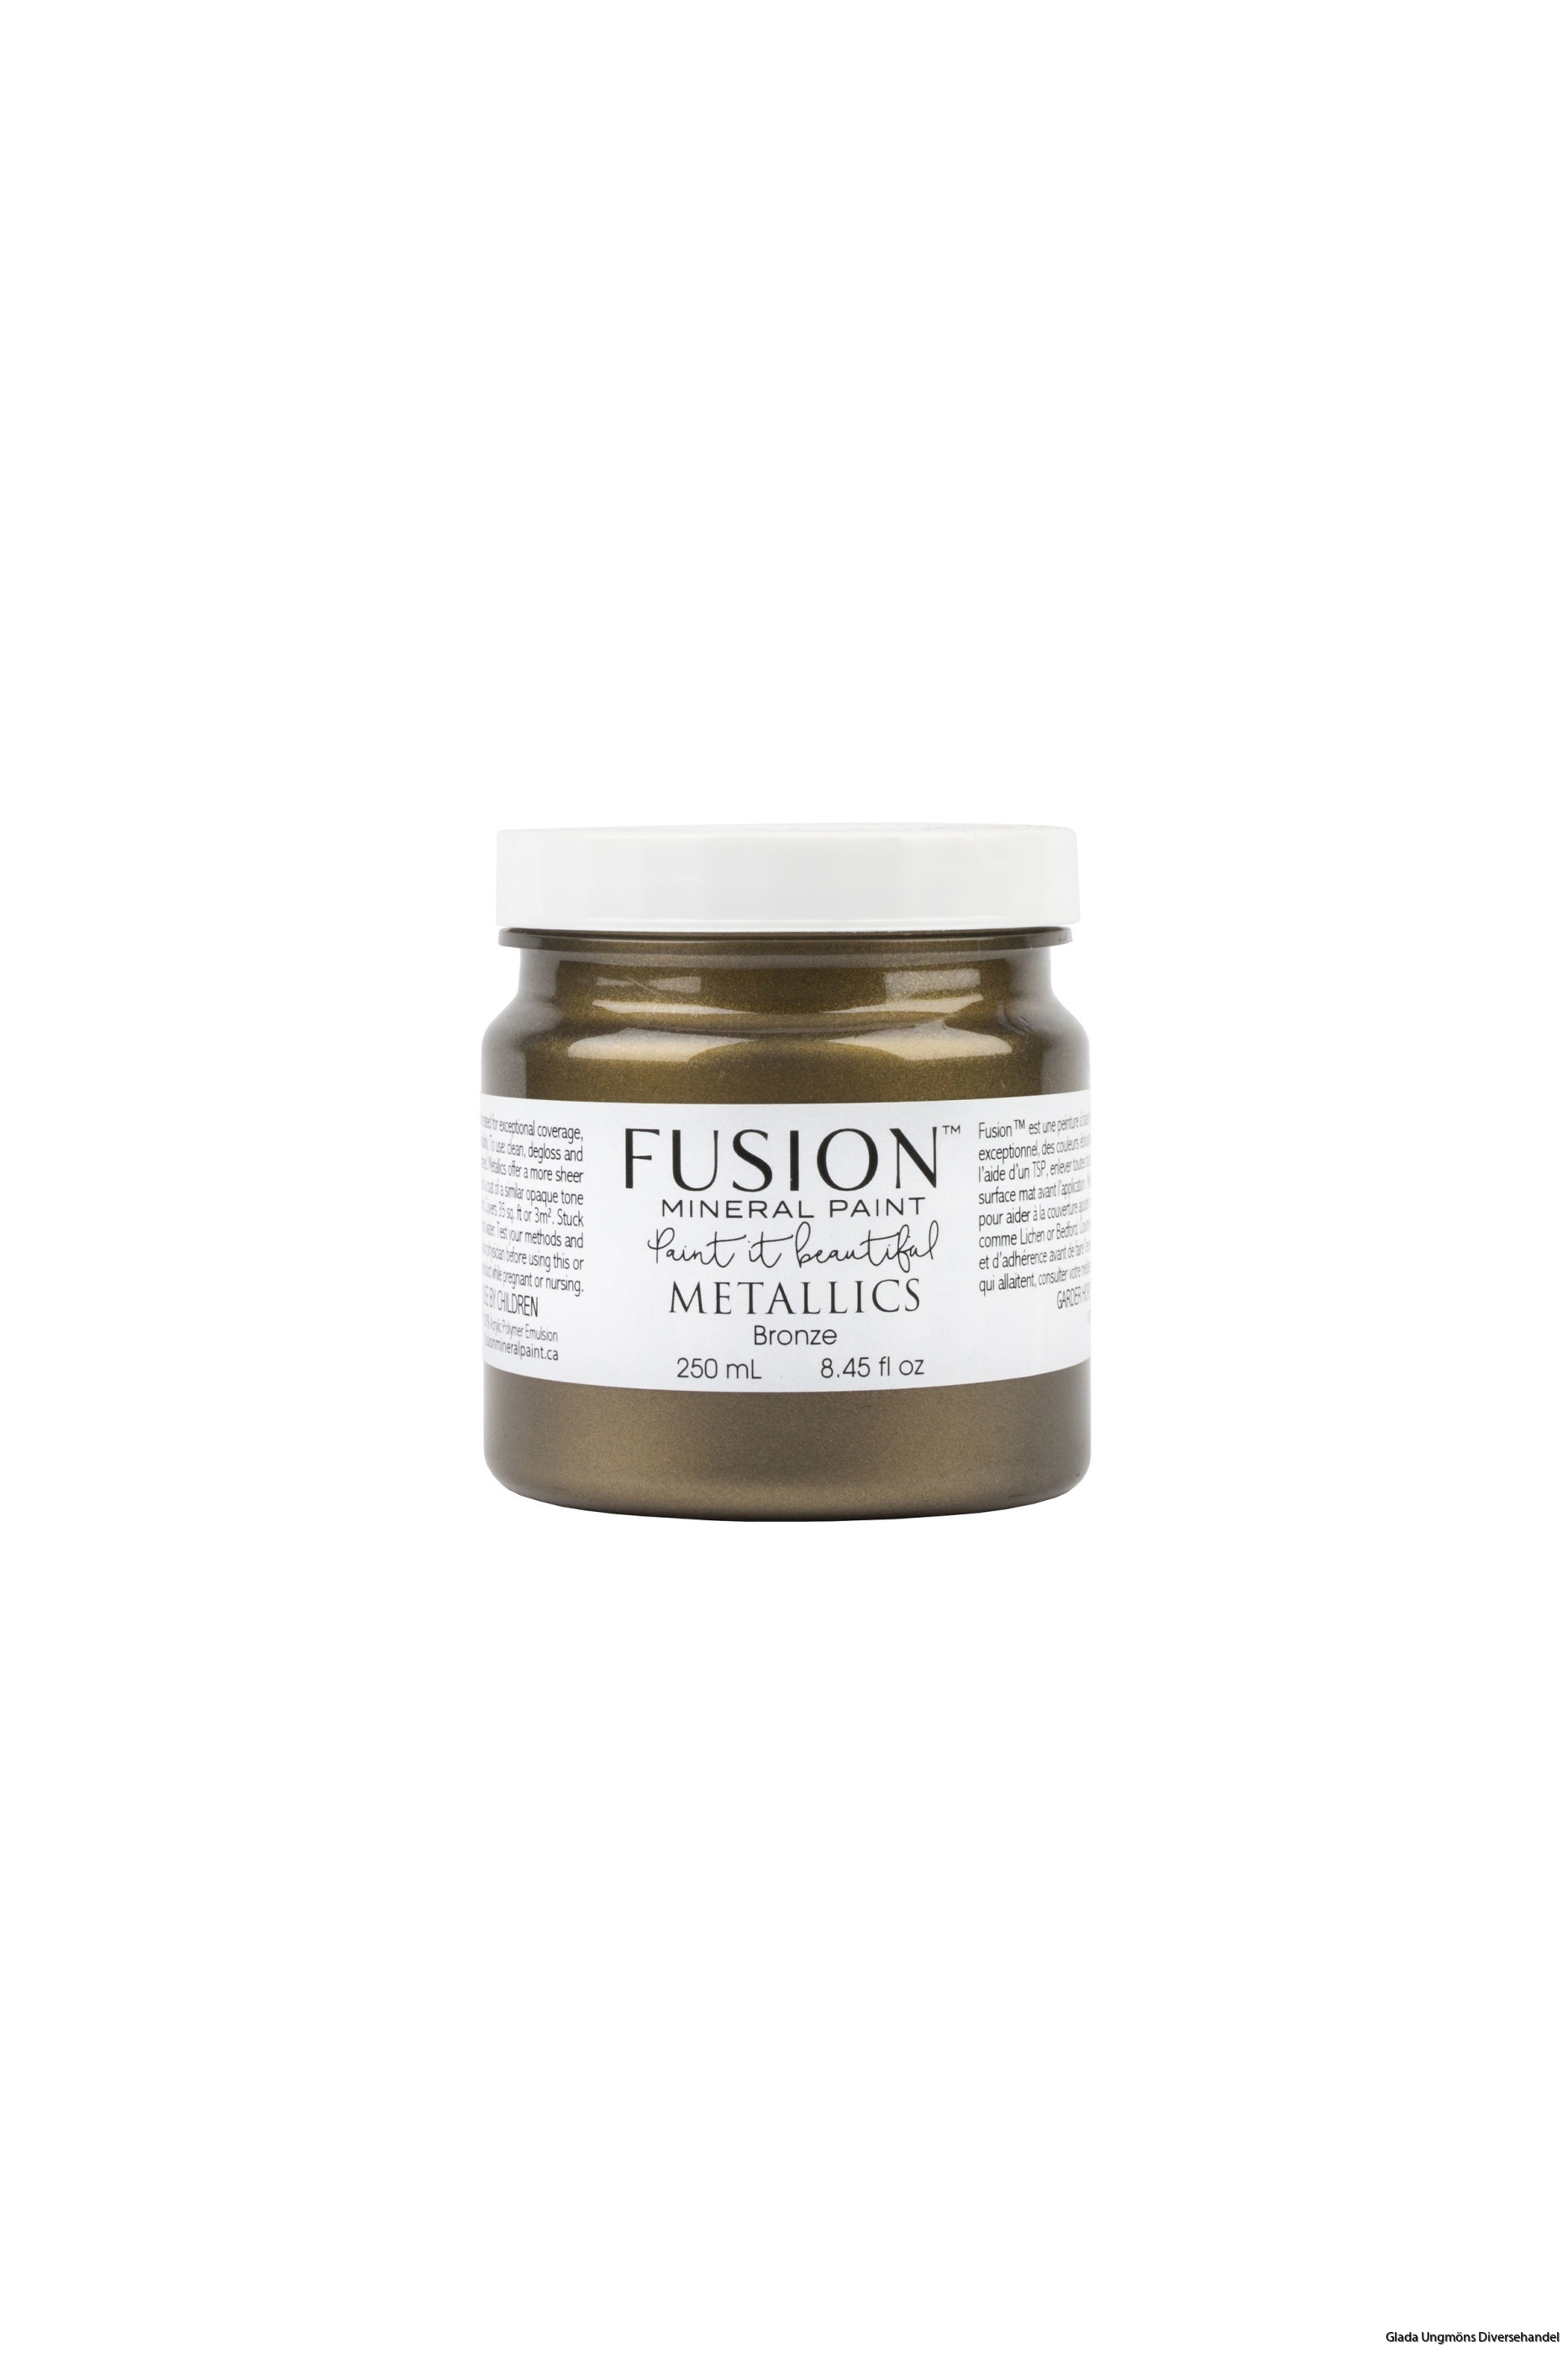 fusion_mineral_paint-metallic-bronze-250ml